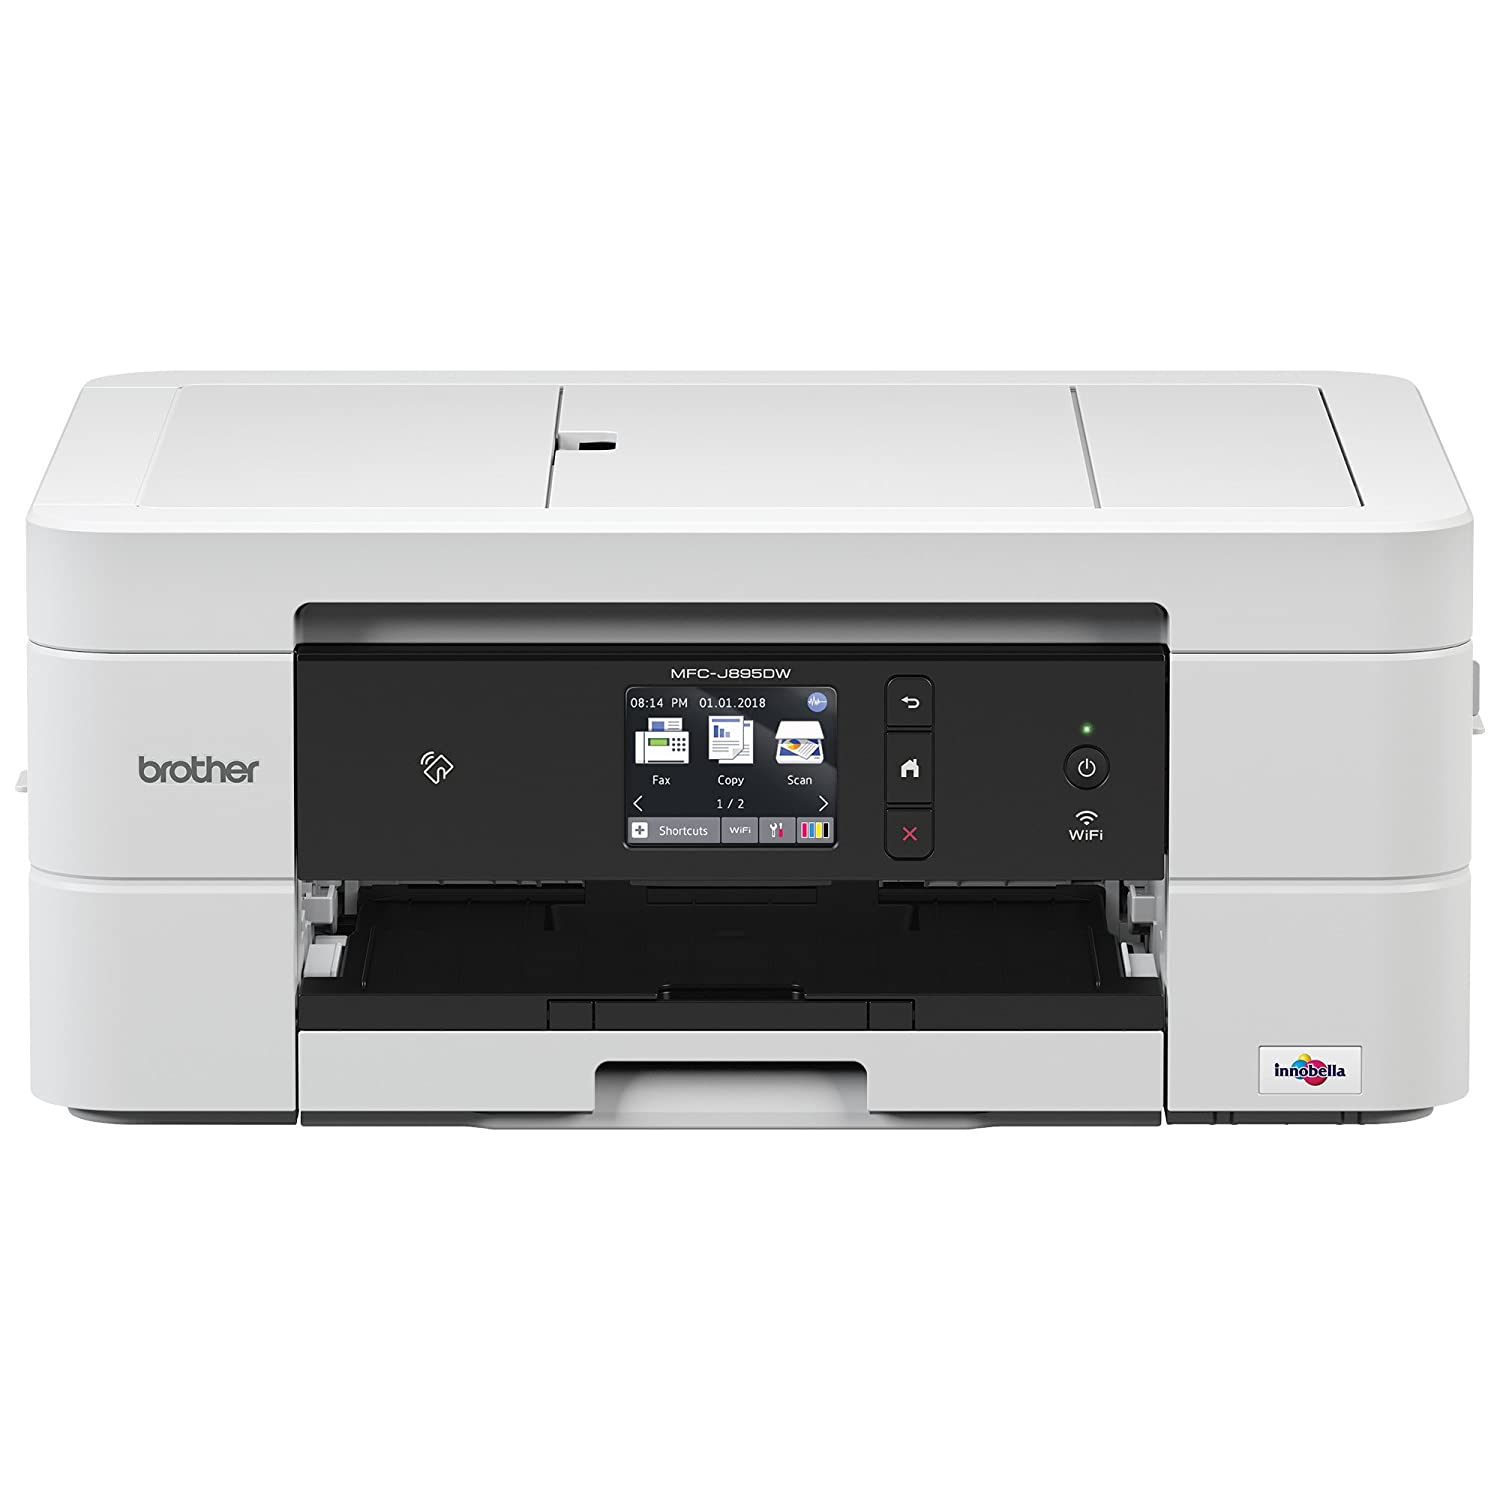 Brother MFC-J895DW A4 Colour Inkjet Printer, Wireless, PC Connected and  NFC, Print, Copy, Scan, Fax and 2 Sided Printing